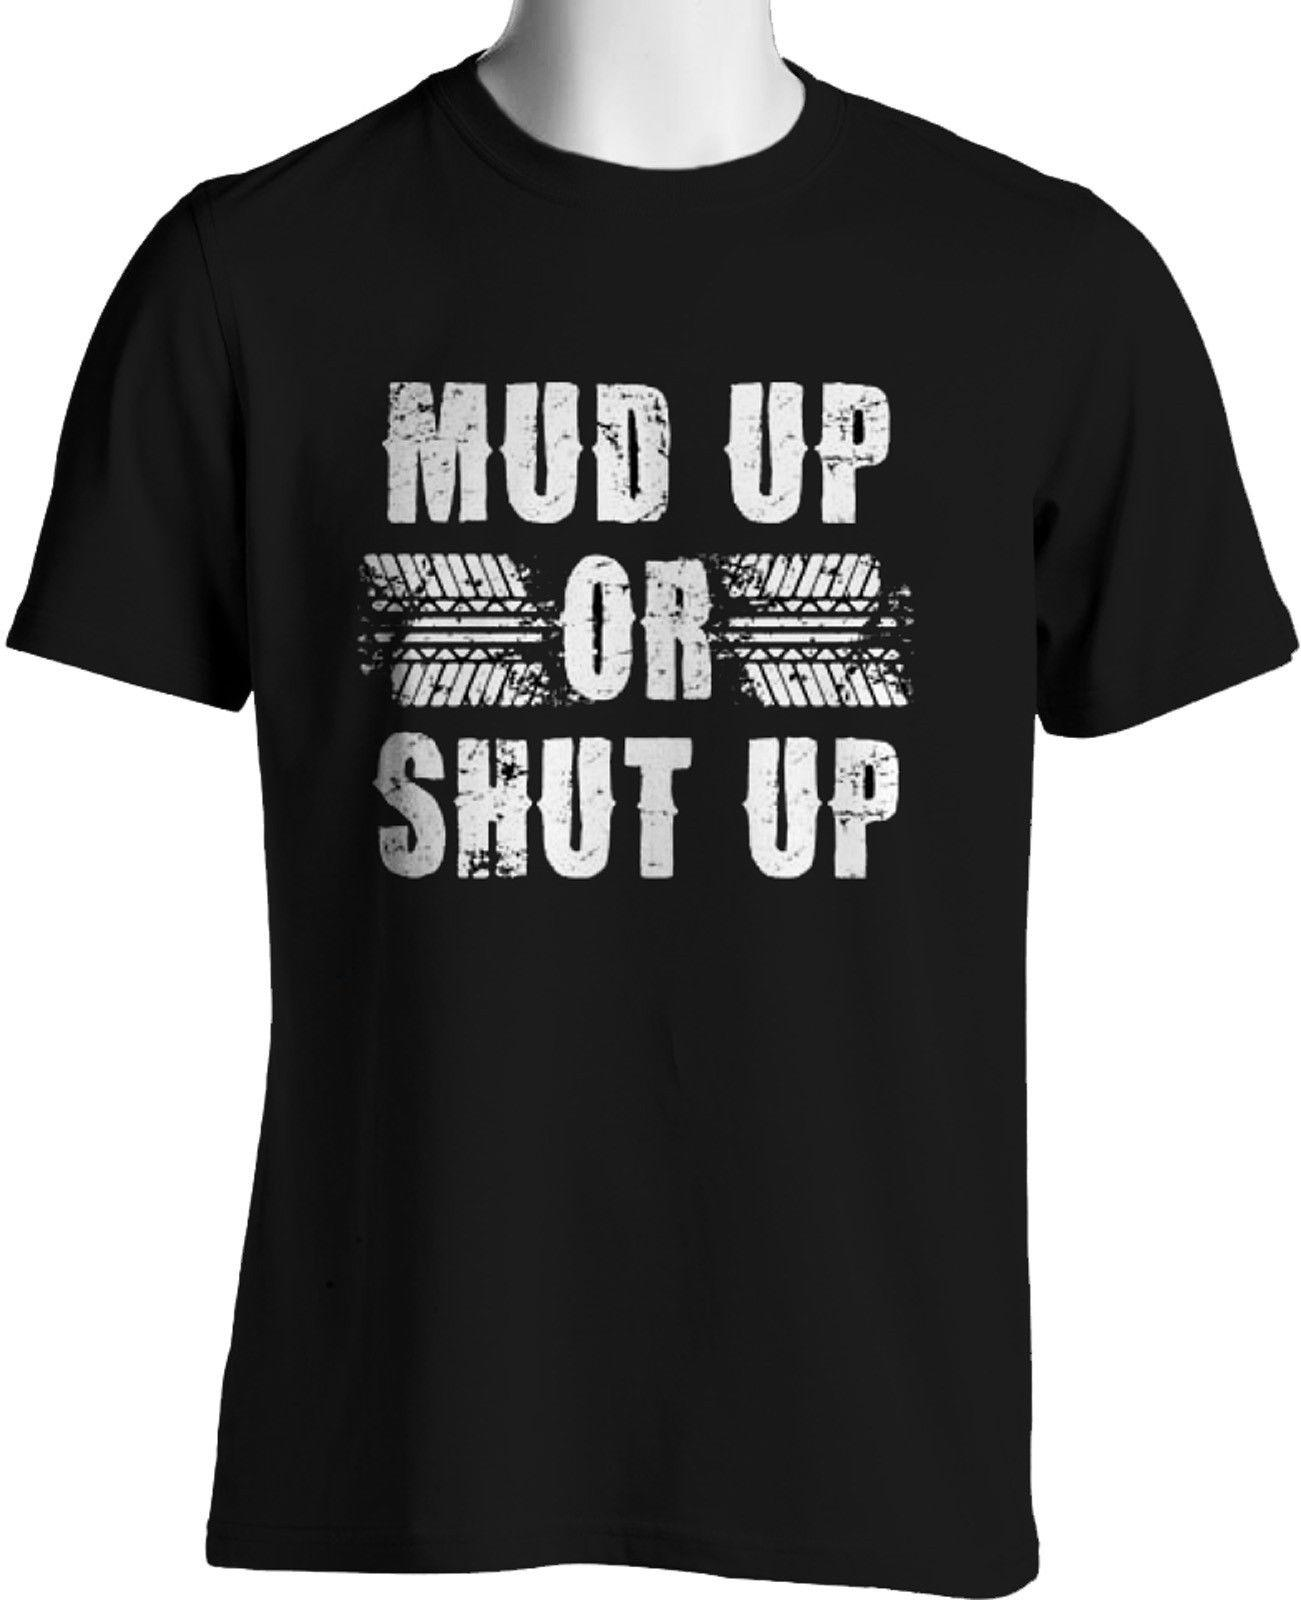 4 X 4 Pickup Truck T-Shirt Mud Up or Shut Up Party Down South Fun S to 3XLT  Tall 2018 Men S Lastest Printed funny T-Shirt